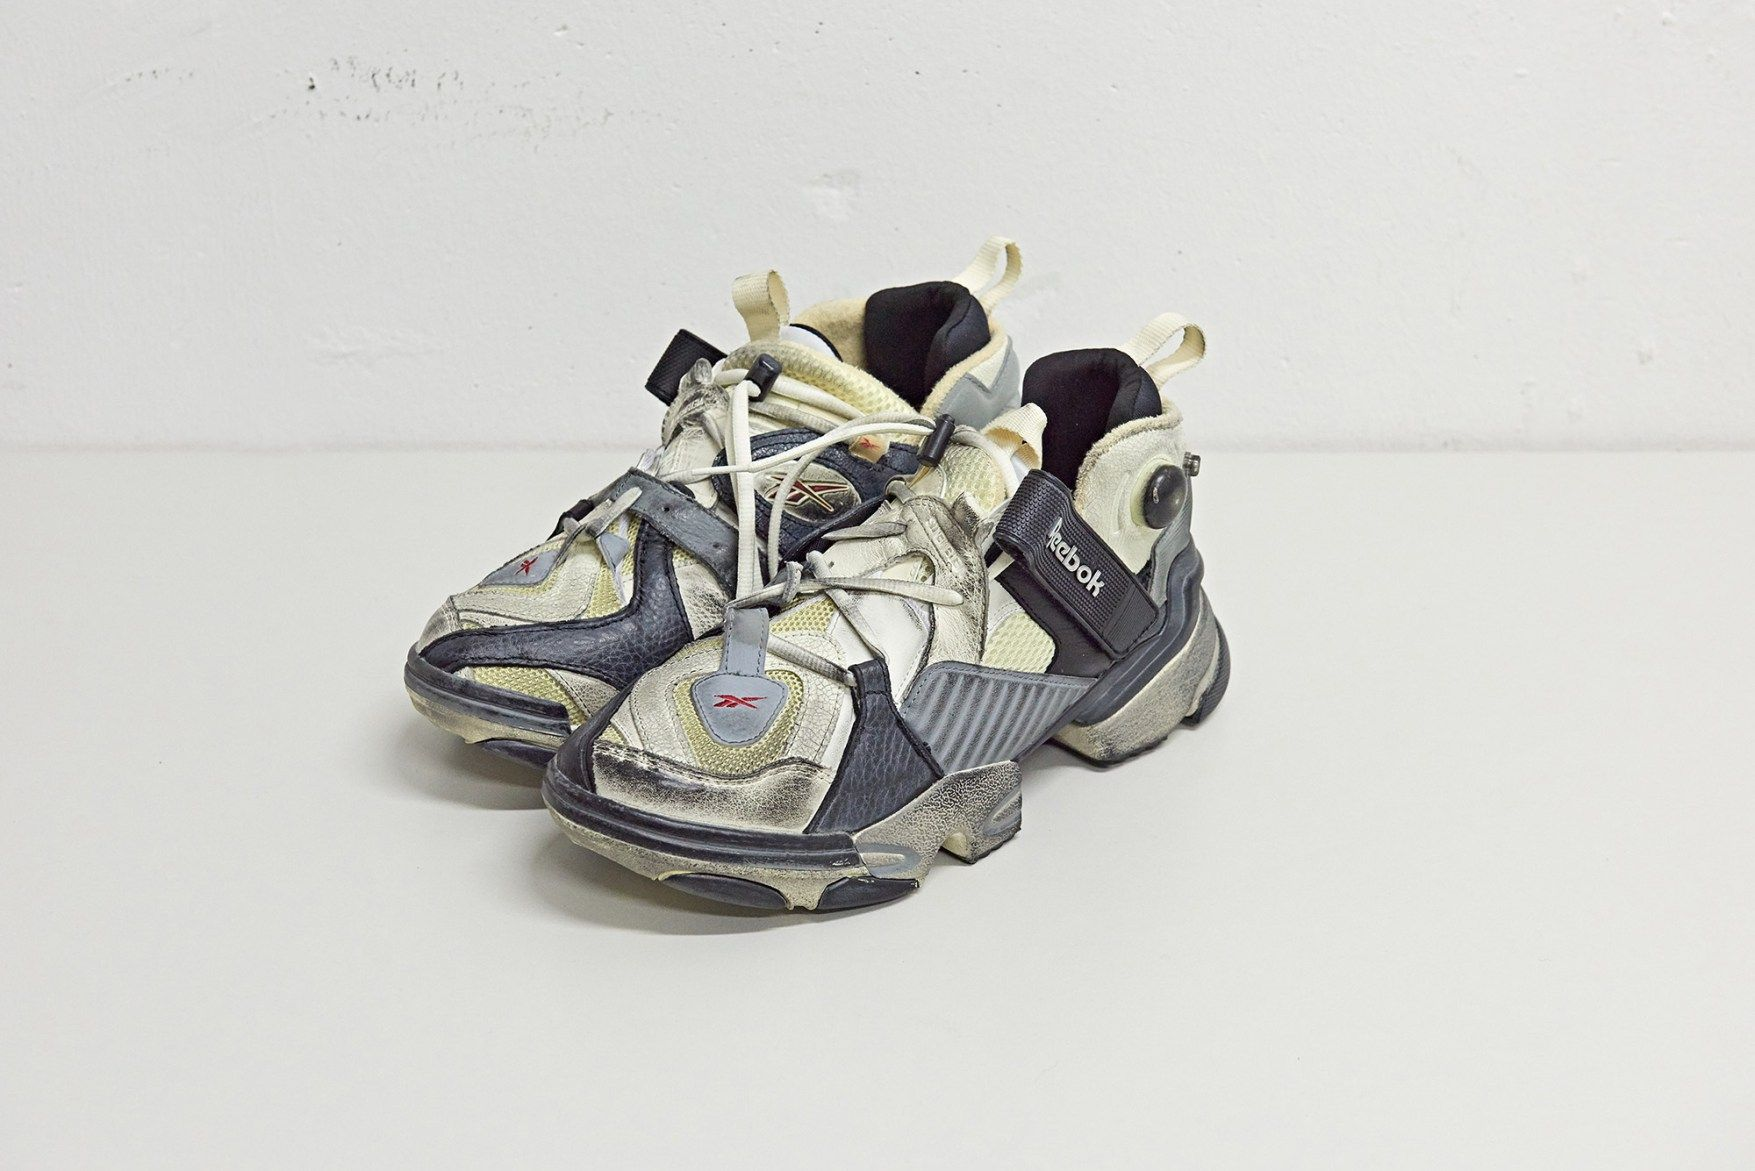 75cd9b52576161 2018 vetements reebok genetically modified pump 10 corso como korea  exclusive